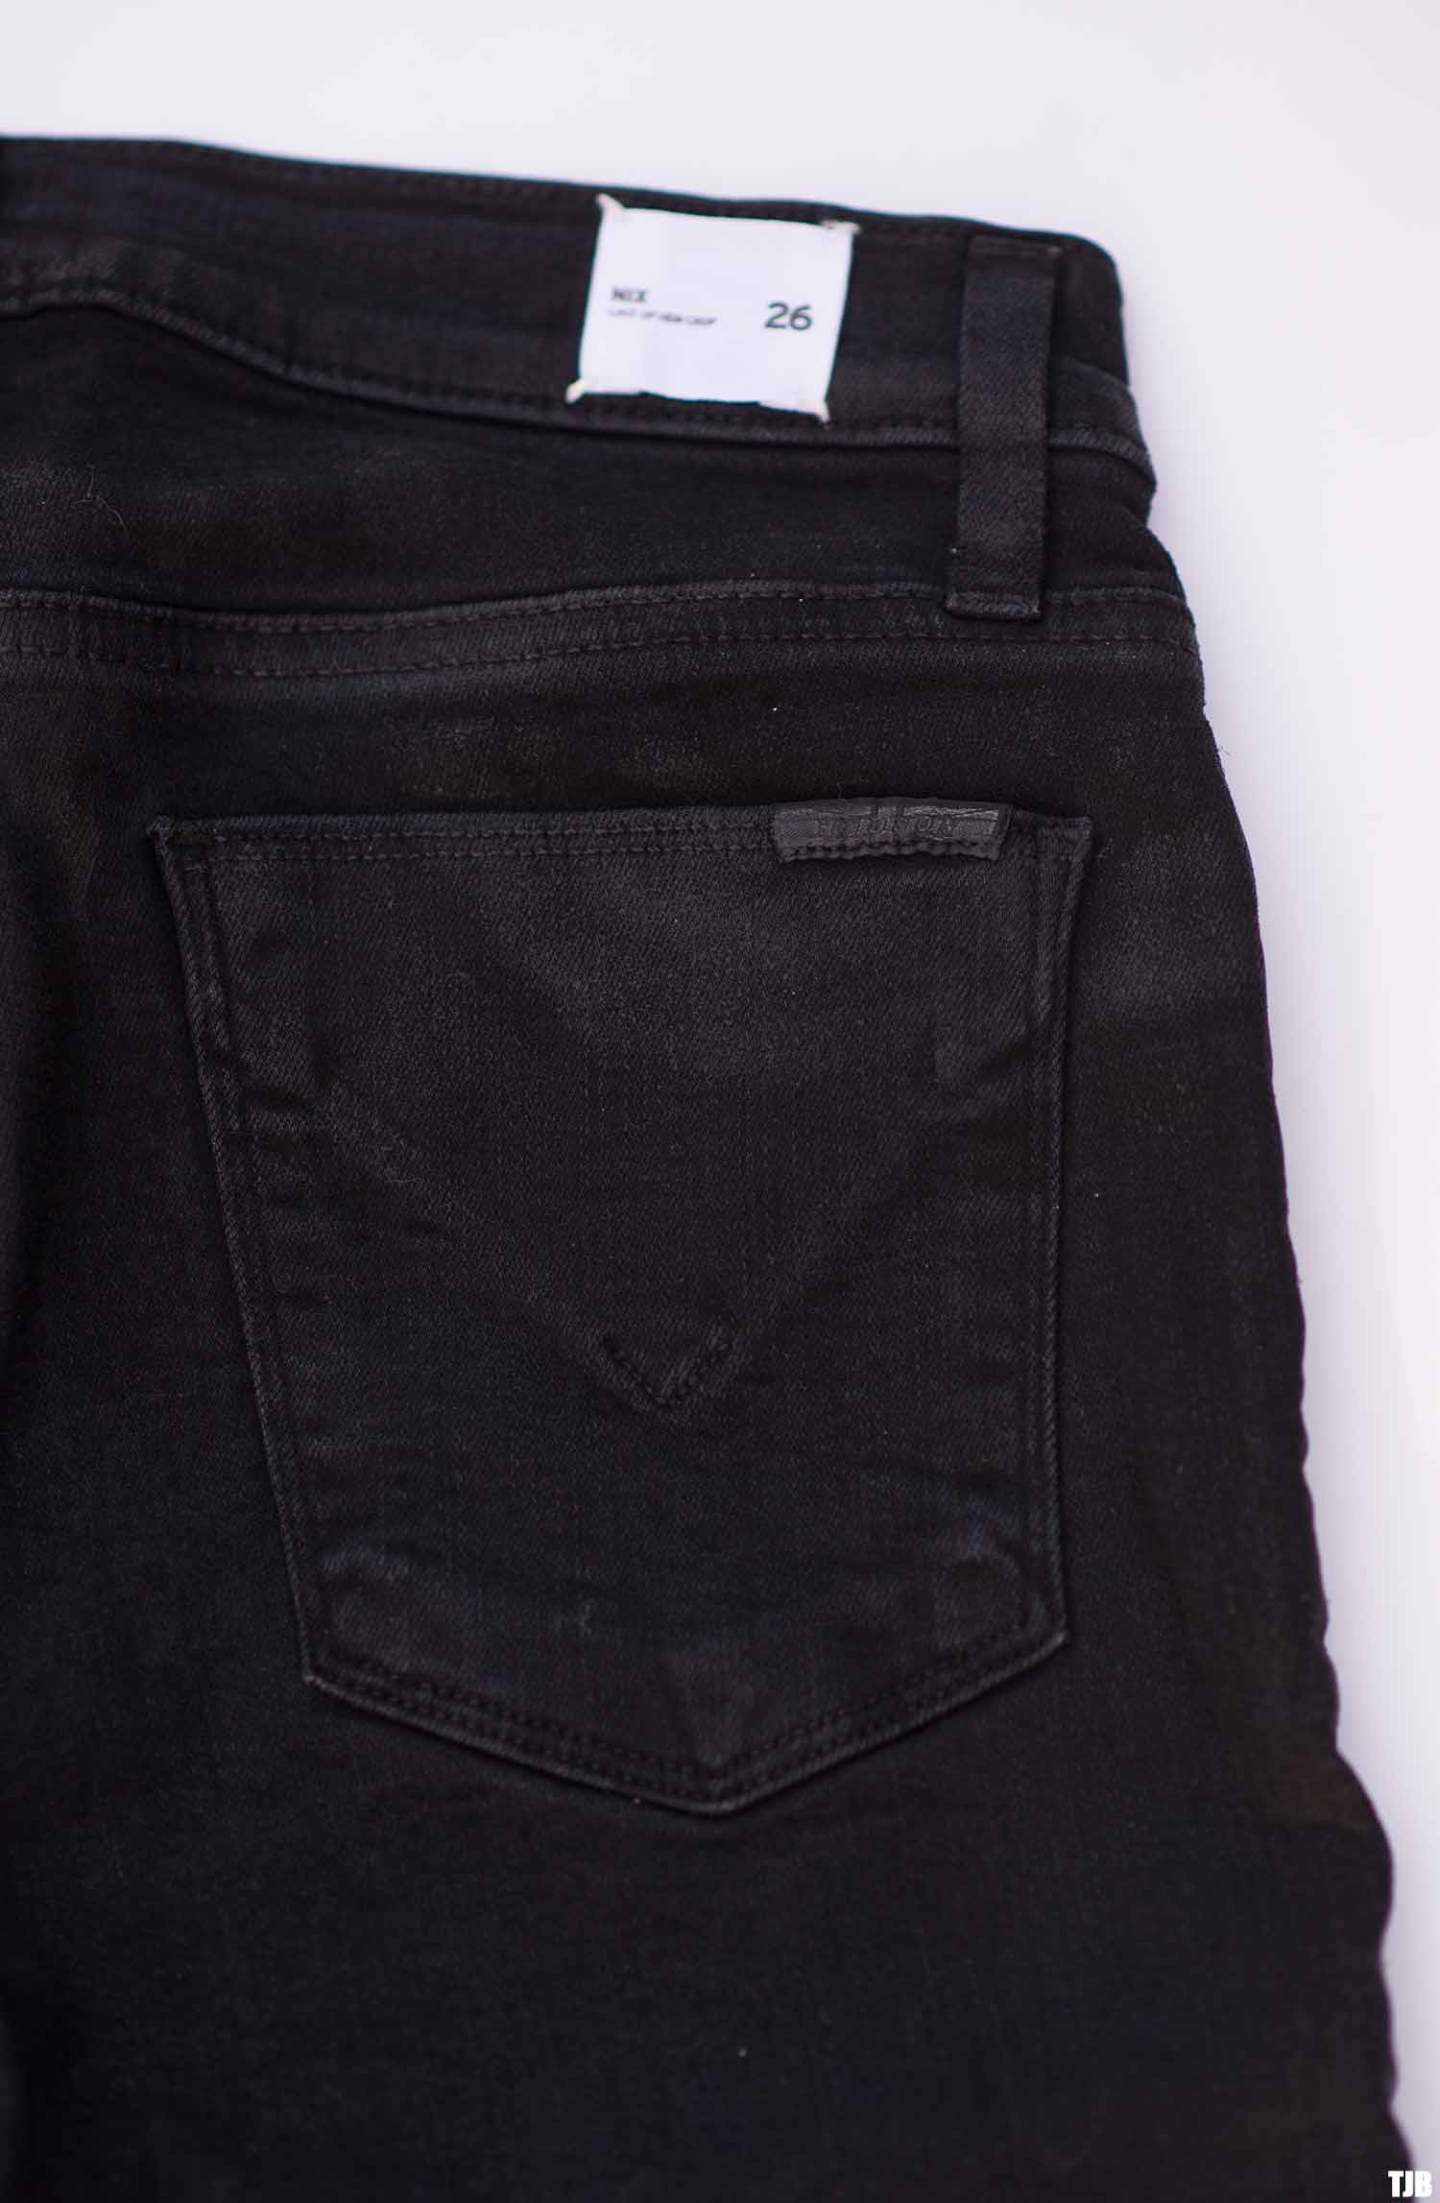 hudson-nix-skinny-lace-up-jeans-review-5